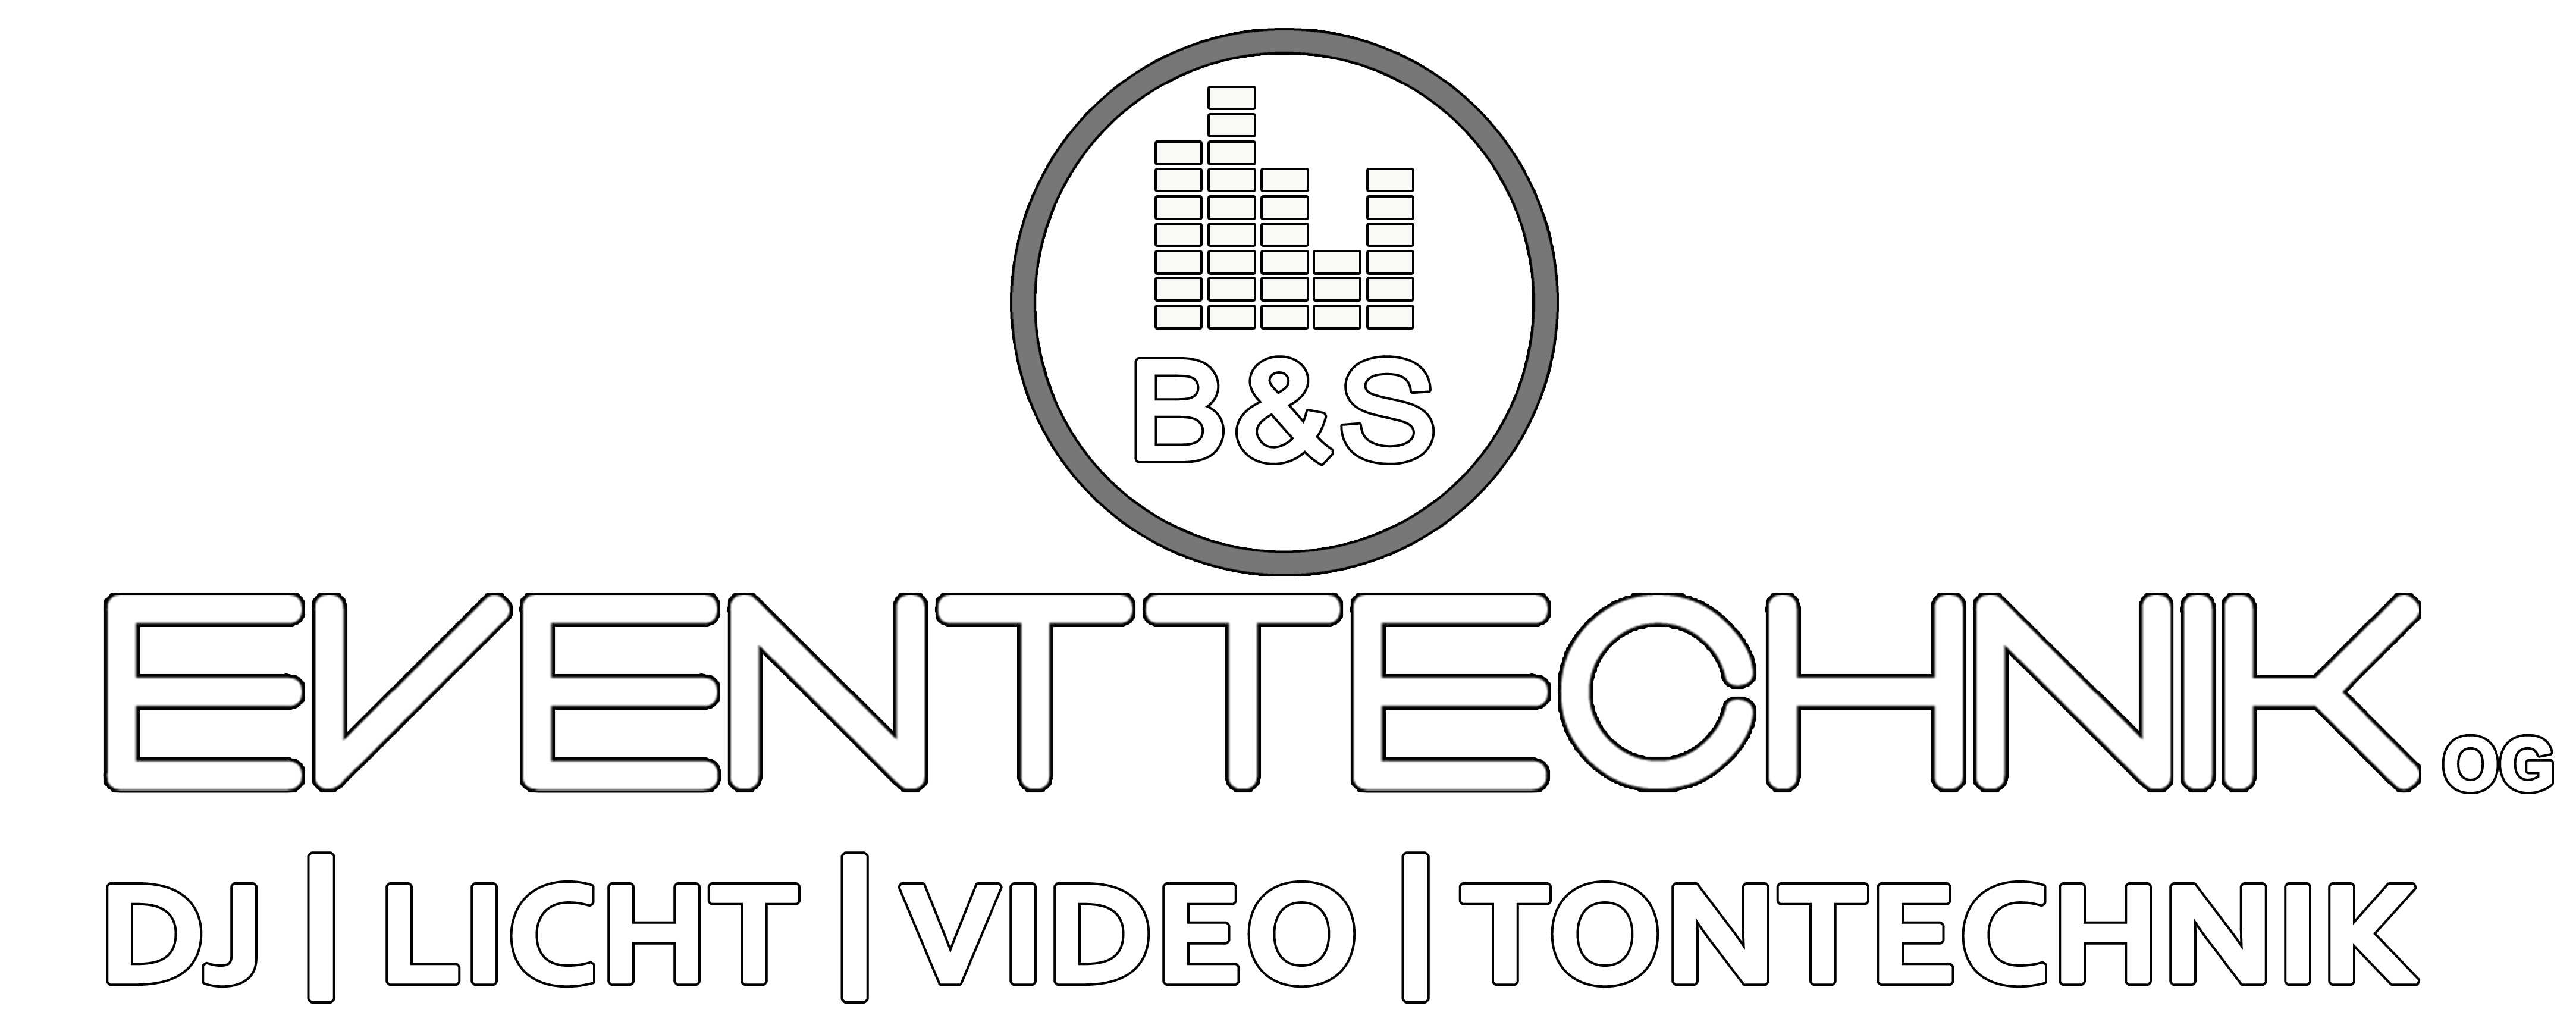 B&S Eventtechnik OG